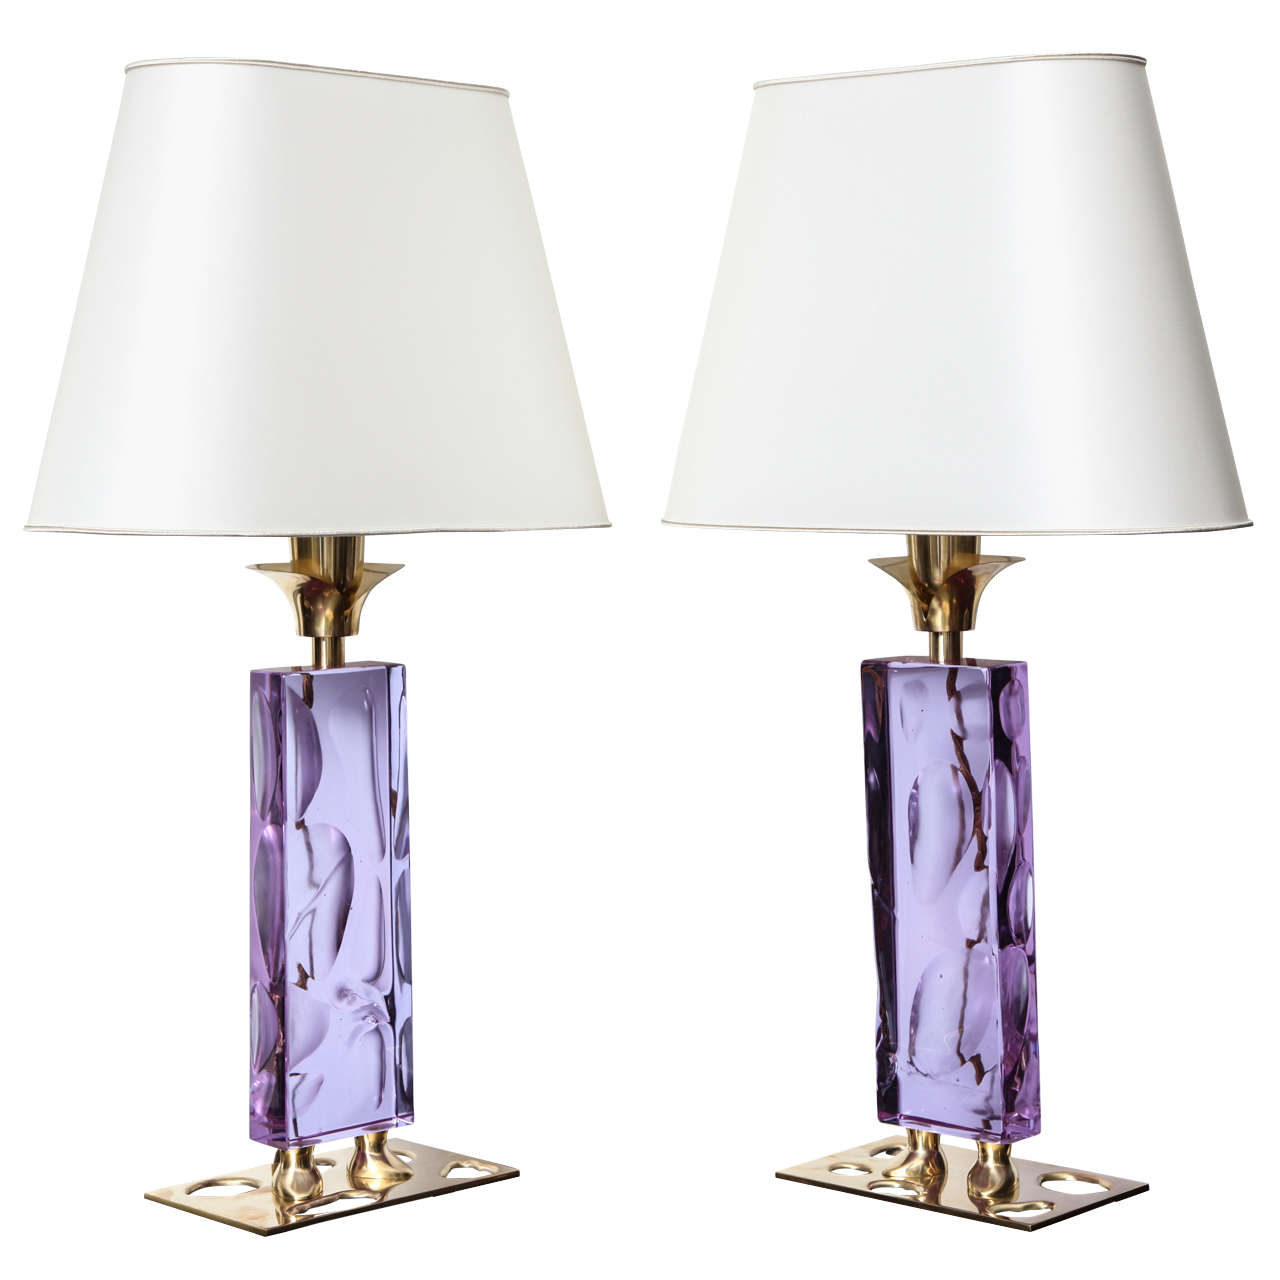 Elfo unique pair of table lamps by roberto giulio rida at 1stdibs elfo unique pair of table lamps by roberto giulio rida 1 geotapseo Image collections